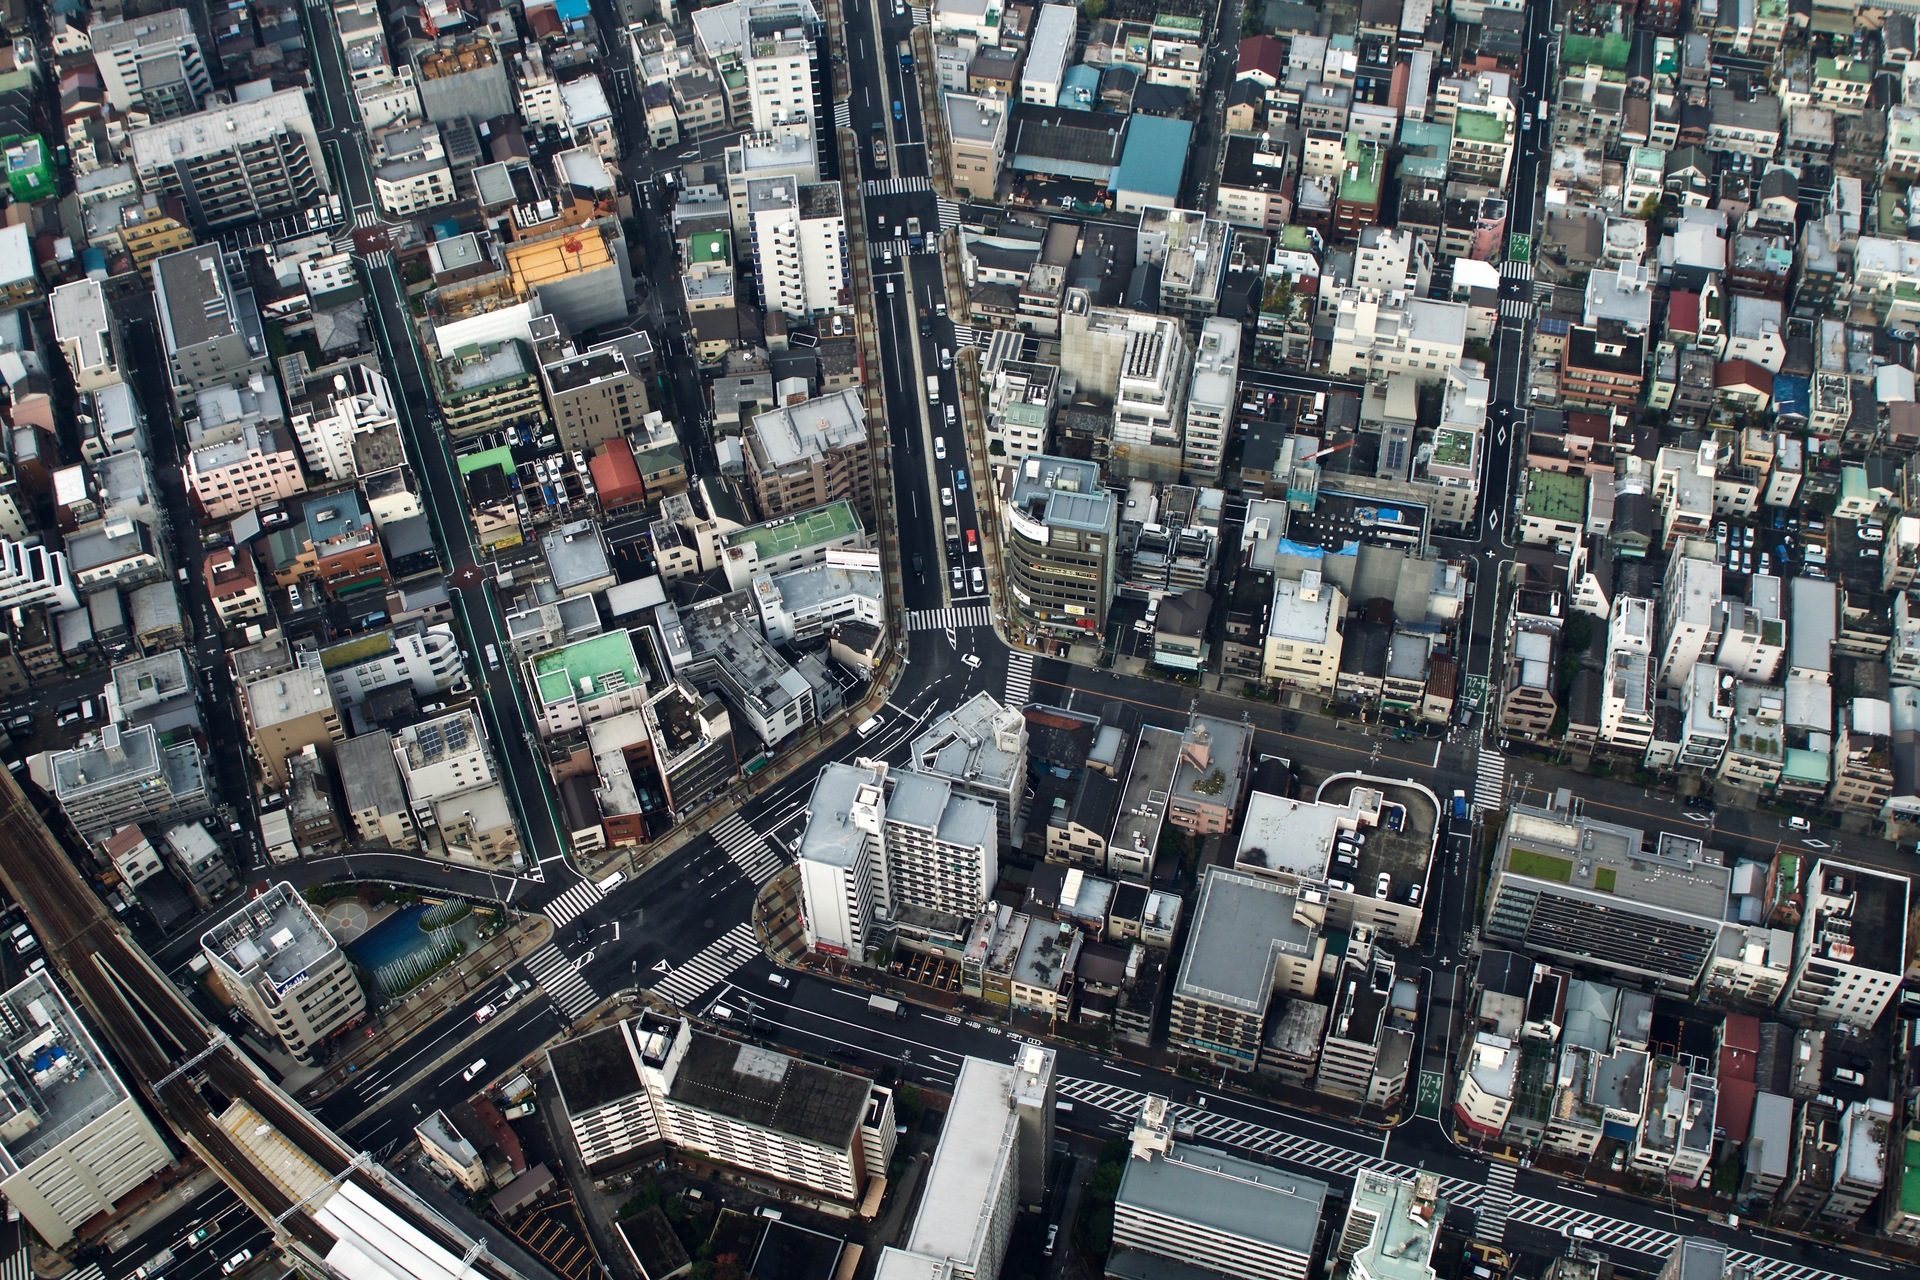 Tokyo seen from 350 meters above at SkyTree